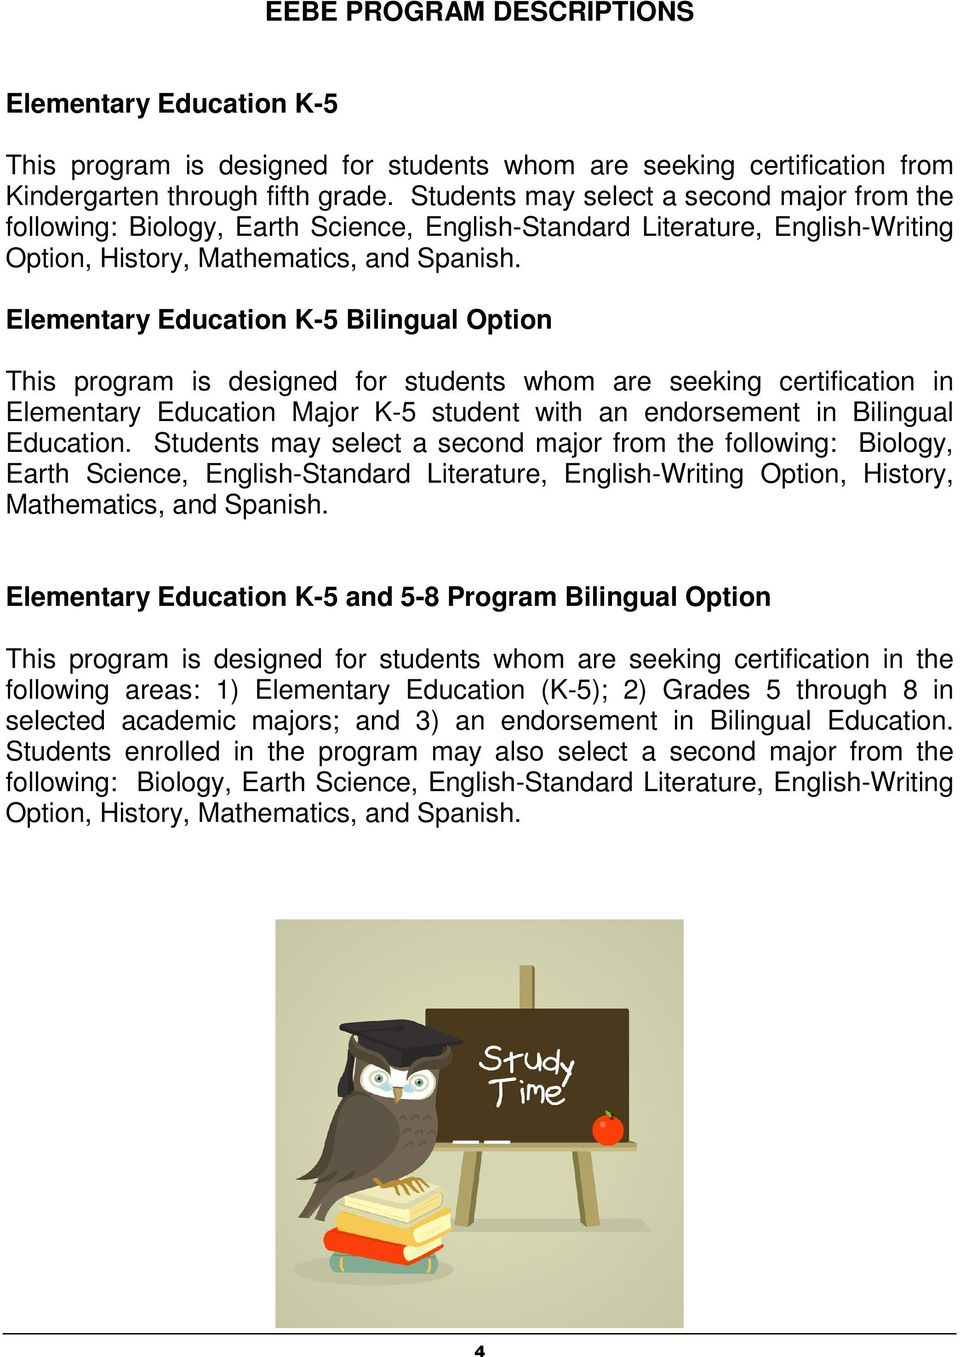 Elementary Education K-5 Bilingual Option This program is designed for students whom are seeking certification in Elementary Education Major K-5 student with an endorsement in Bilingual Education.